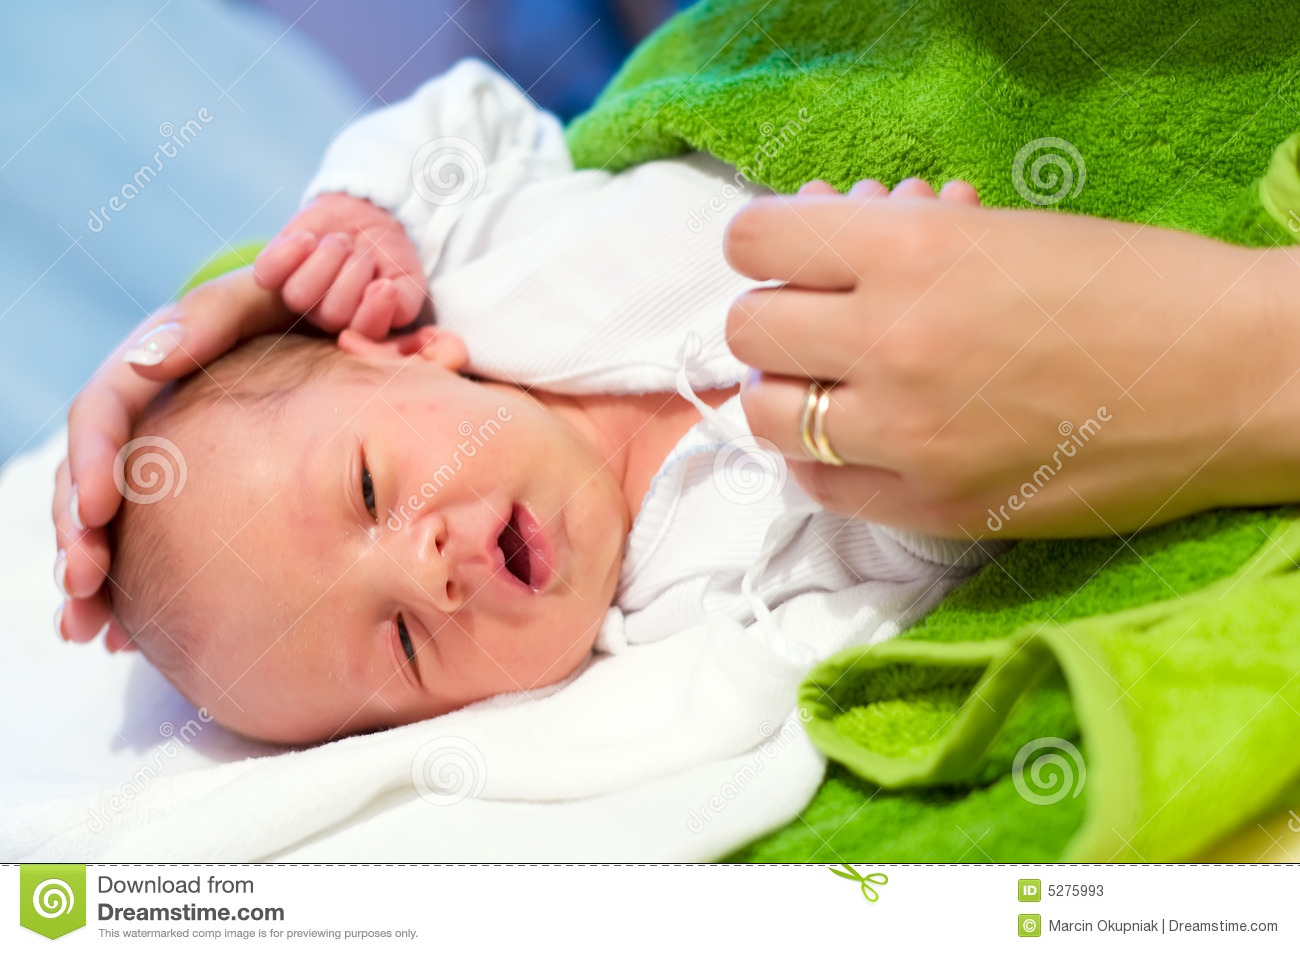 Newborn and mother s hands